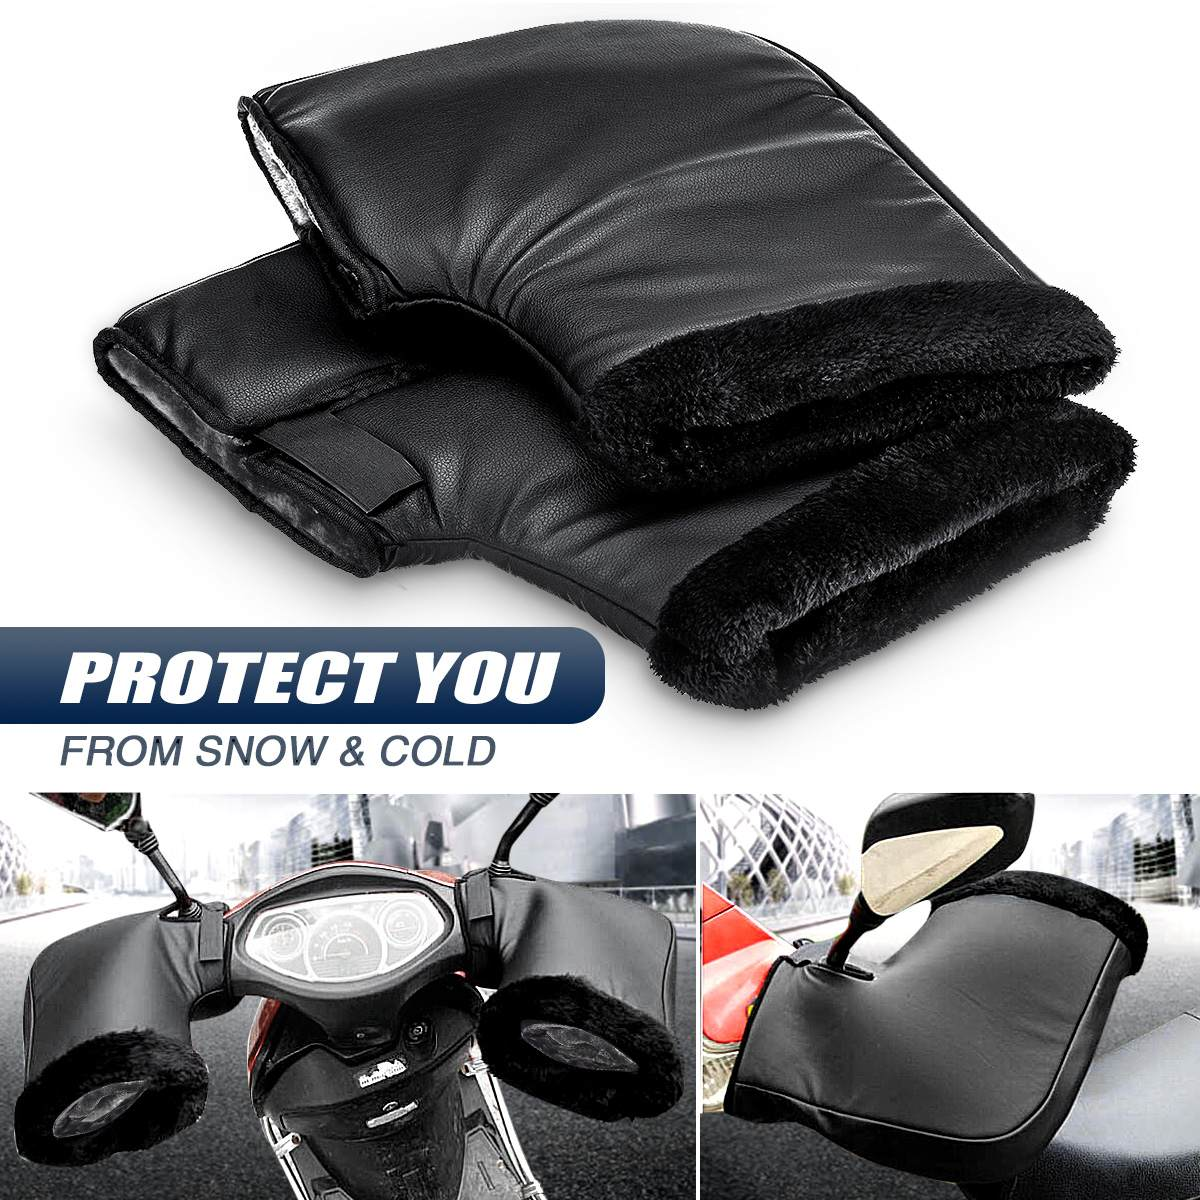 Motorcycle Handlebar Windproof PU Winter Thick Warm Handlebar Muffs Thermal Cover Gloves Universal for Motorcycles, Scooters